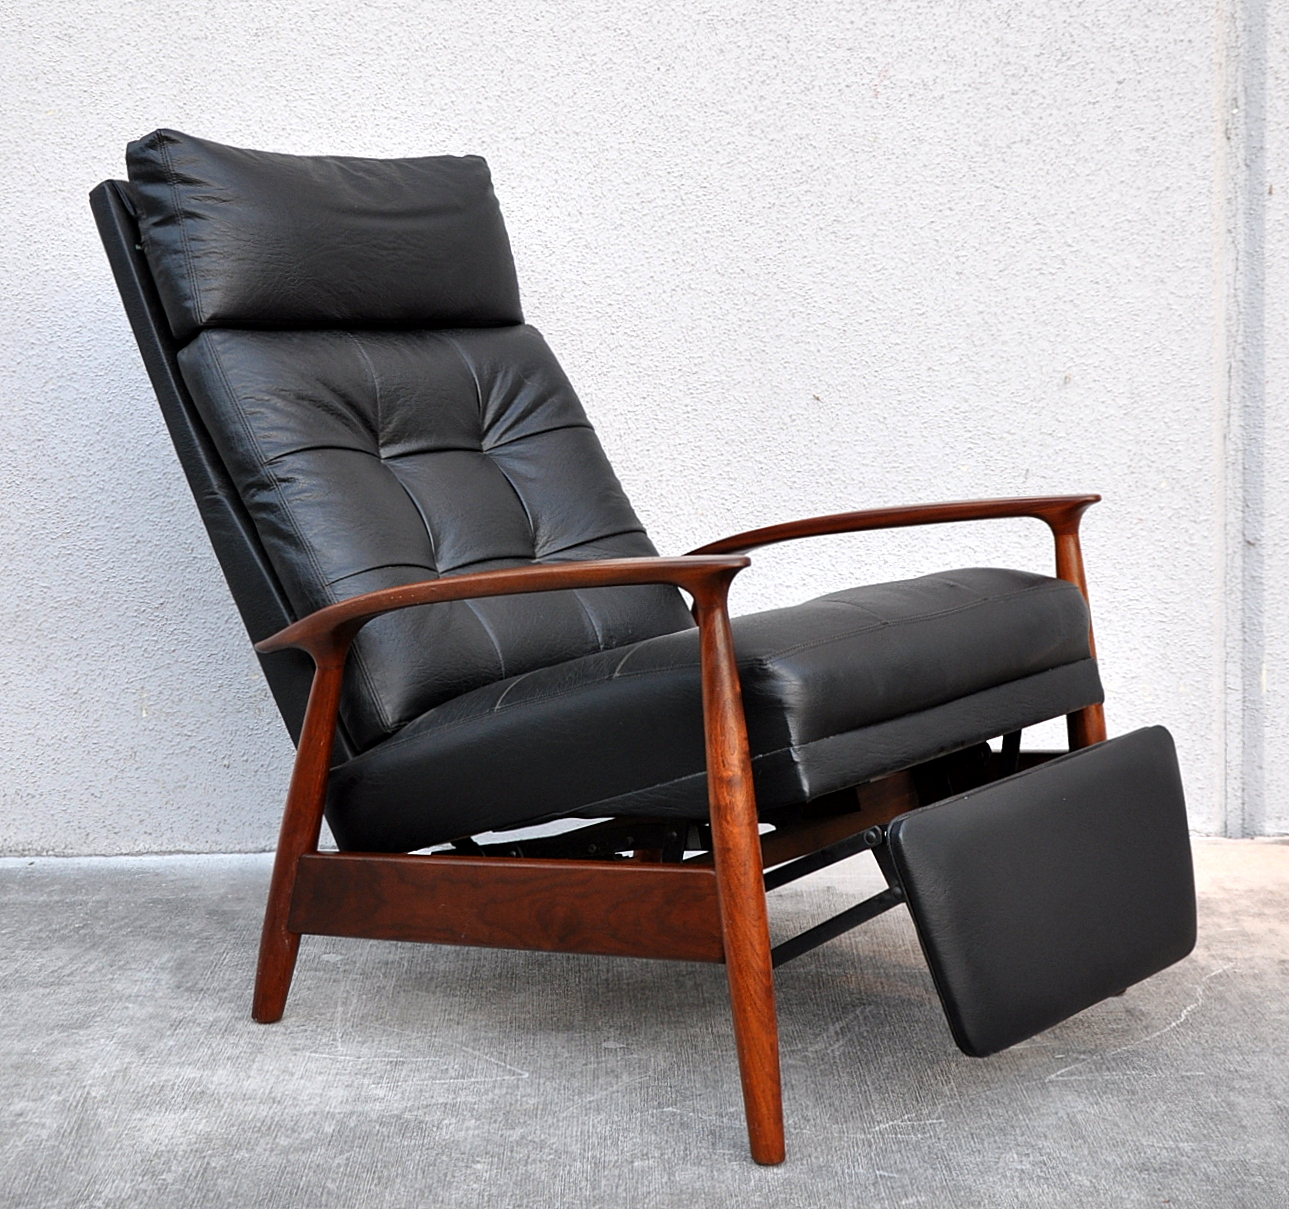 Mid Century Modern Furniture Chair: SELECT MODERN